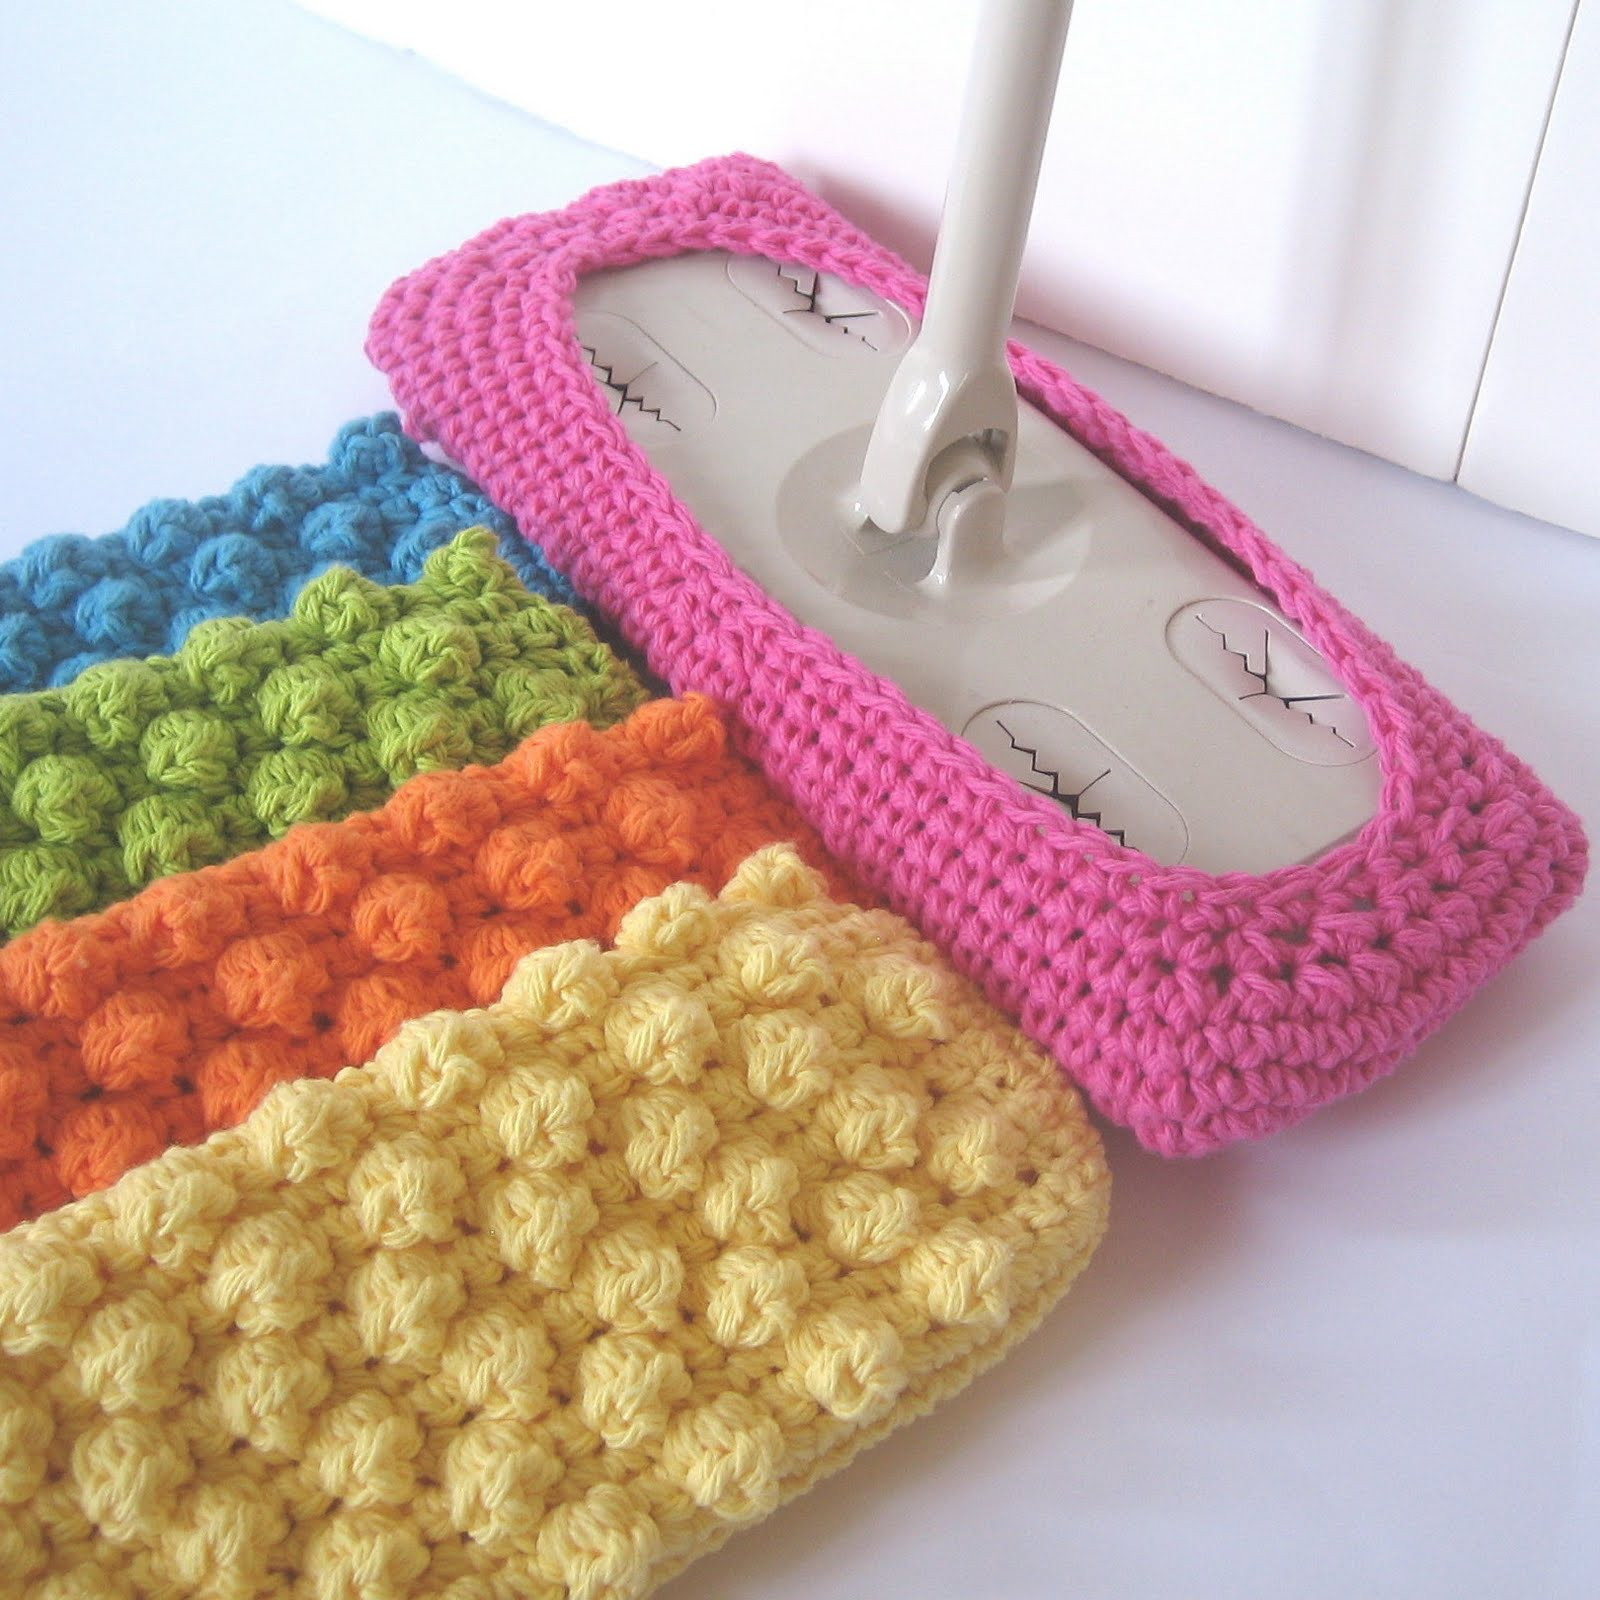 new crochet patterns 2